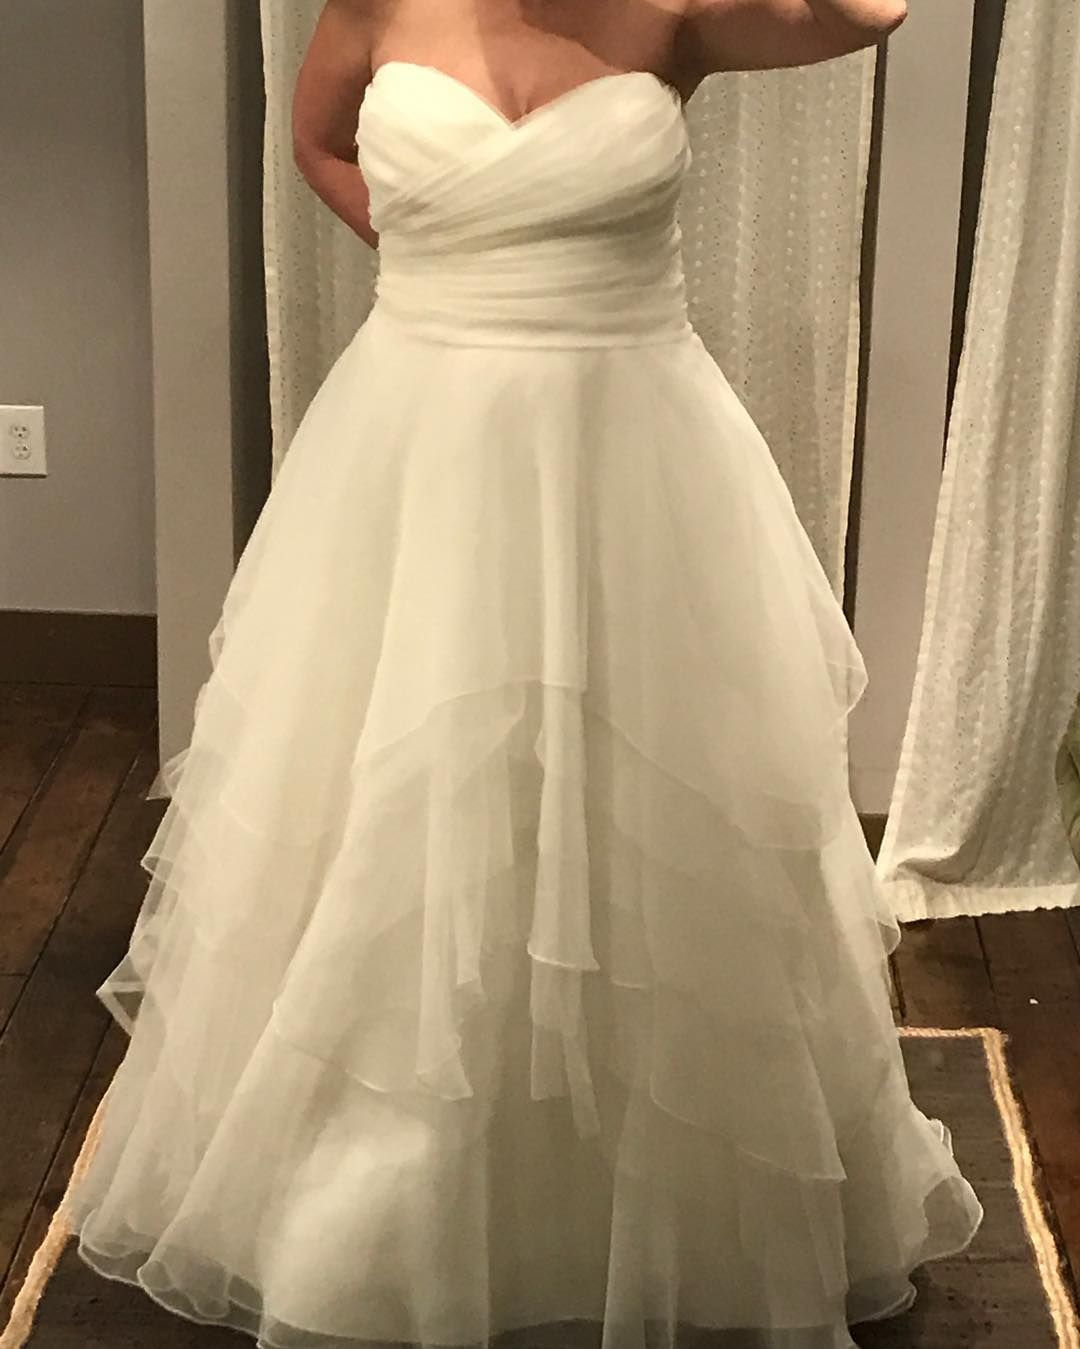 Curvy Brides Can Have Plus Size Wedding Gowns Like This Custom Made With Any Design Change